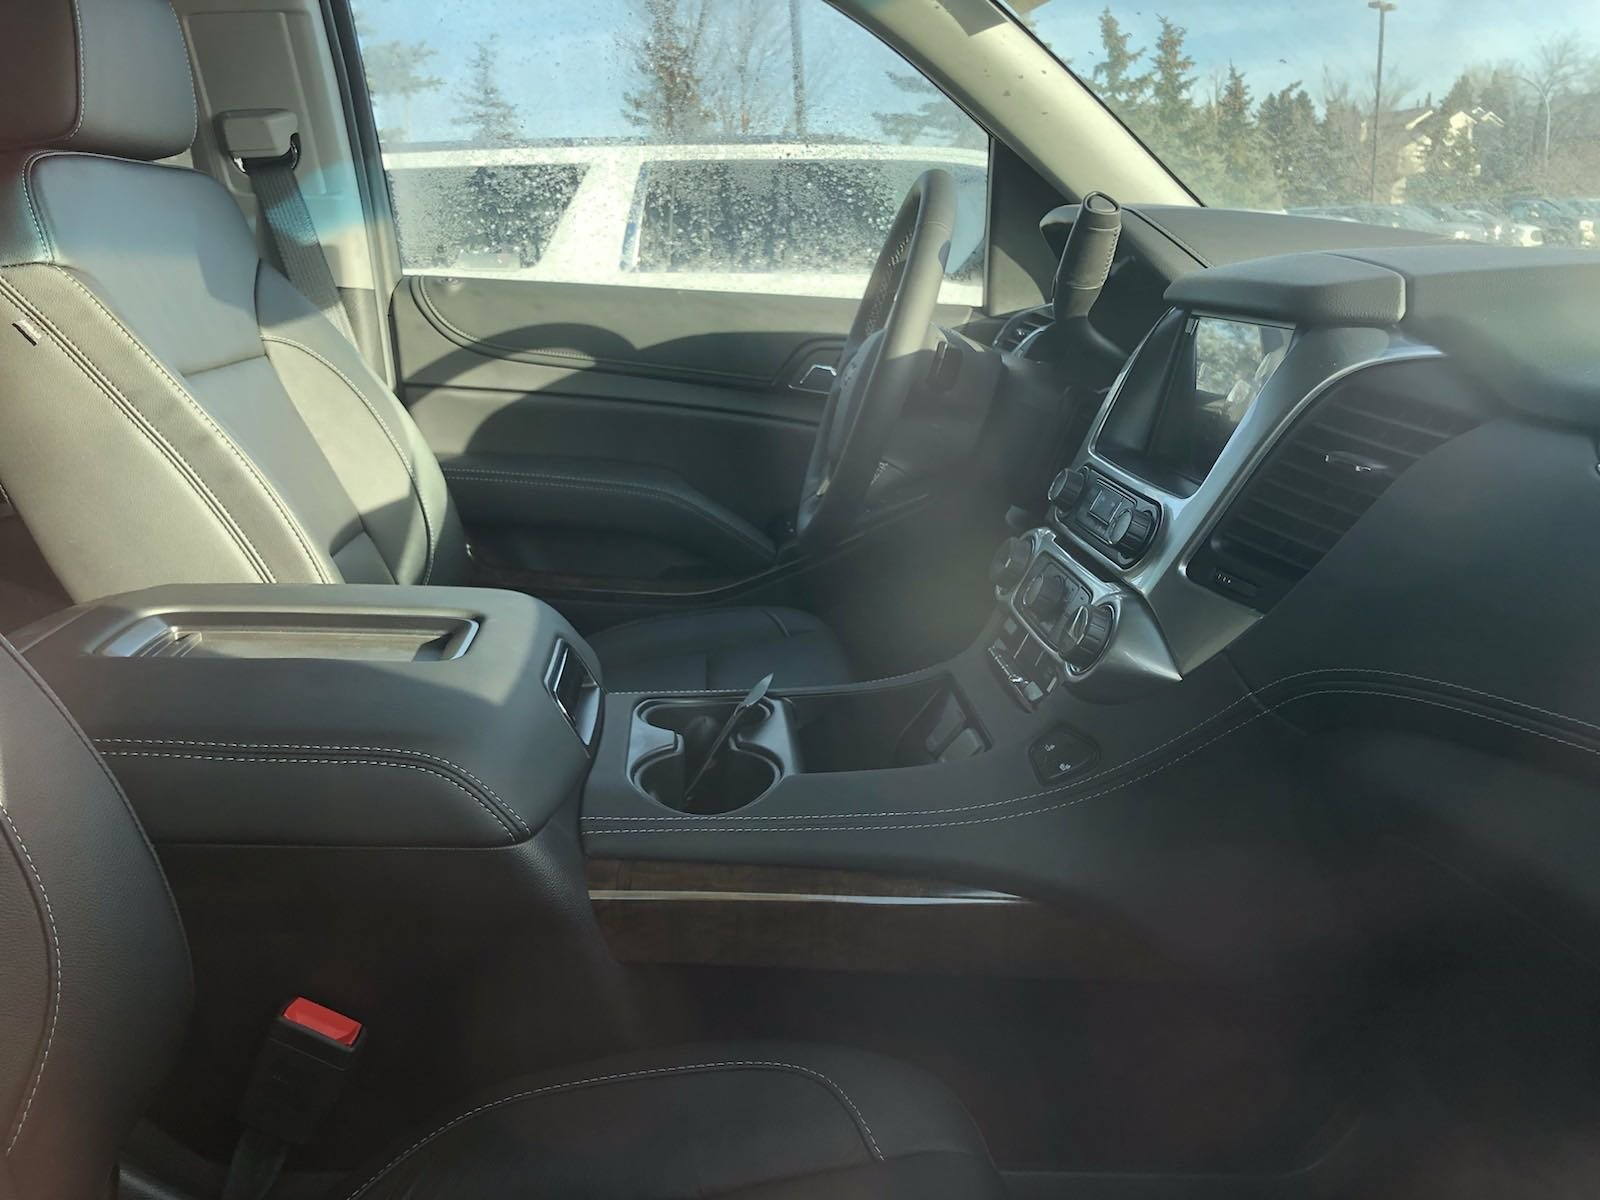 New 2018 Chevrolet Suburban Lt Sport Utility In Calgary 38825 Rx 8 Standard Engine Wire Harness Capital Auto Group